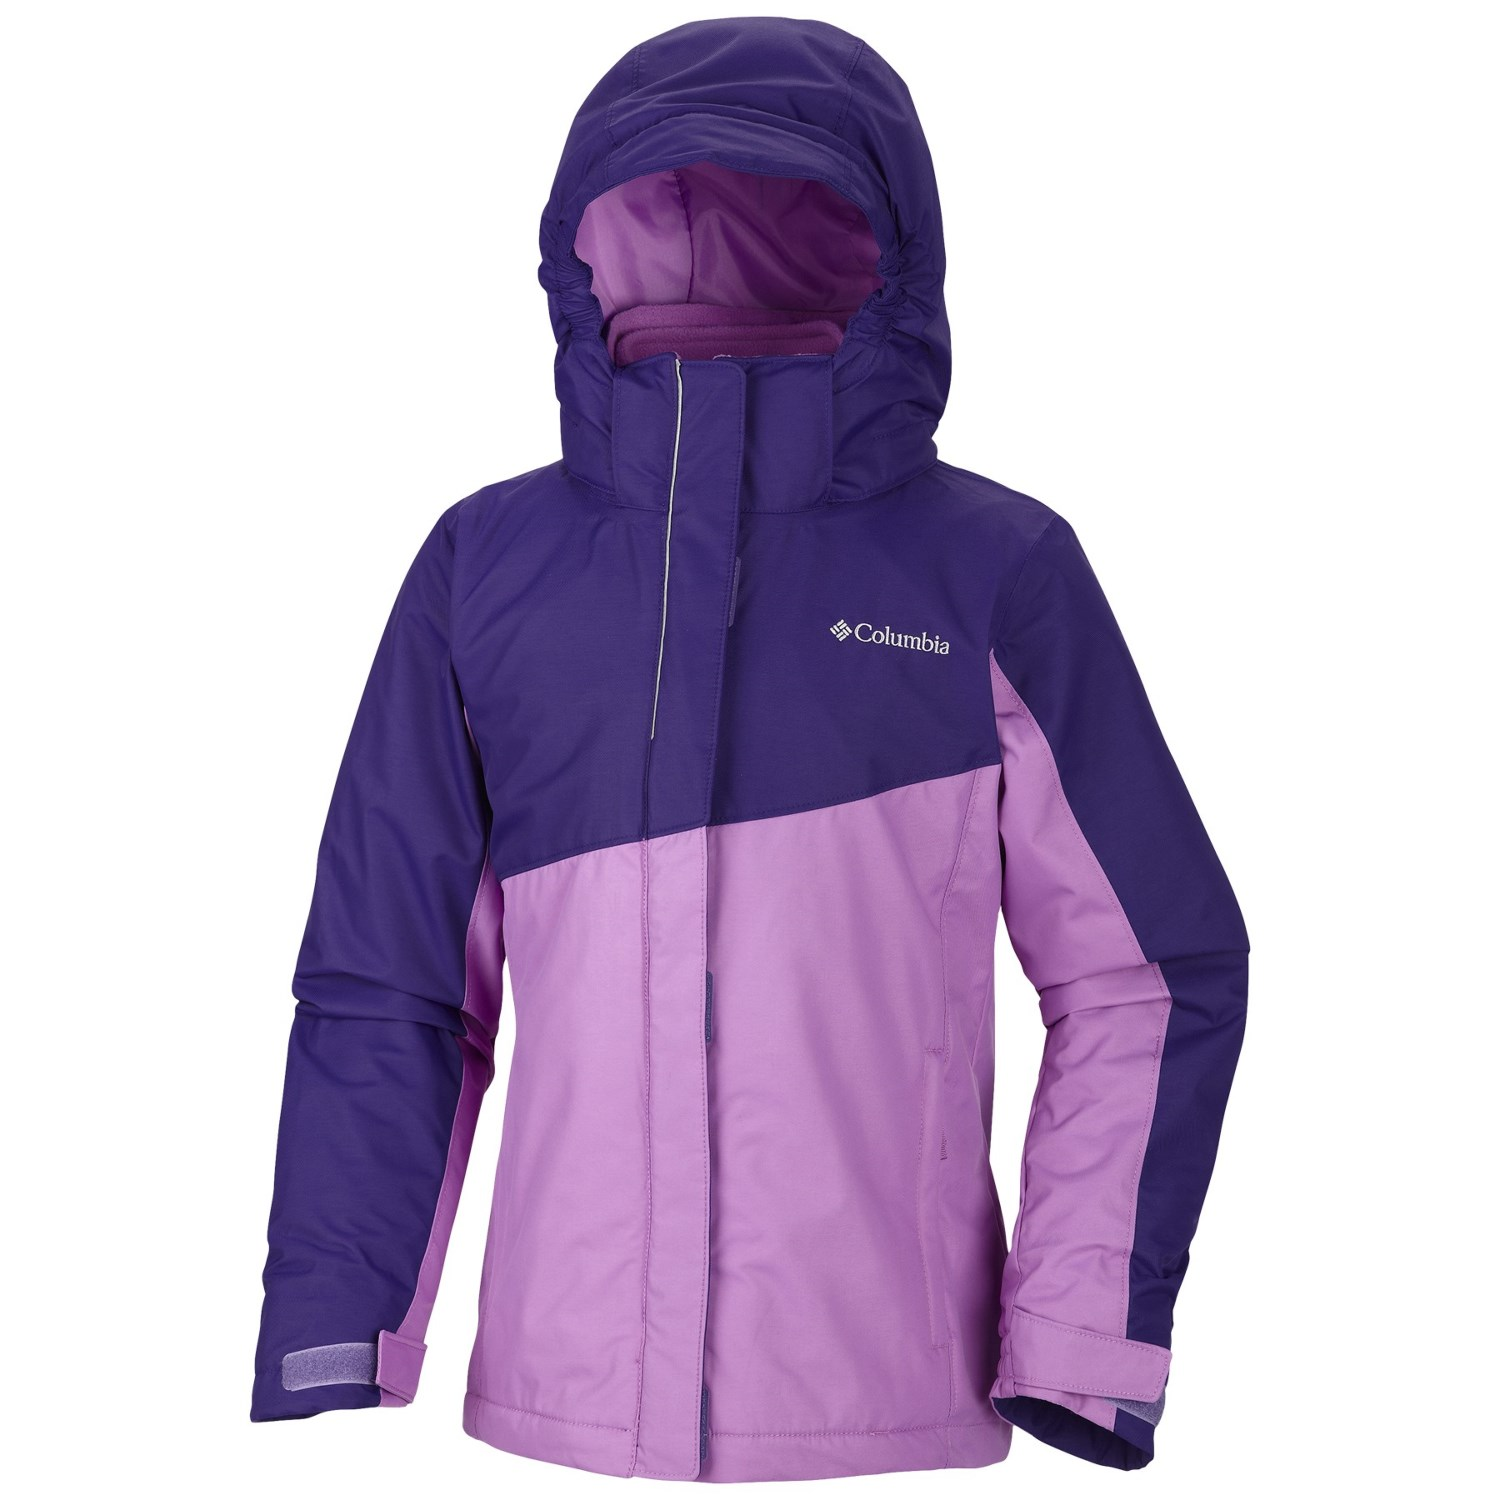 The Girls' 3-in-1 Systems Jacket from C9 Champion has you covered in all types of weather. Outer shell jacket protects with water and wind resistant fabric, dual front closure with hook and loop and z.